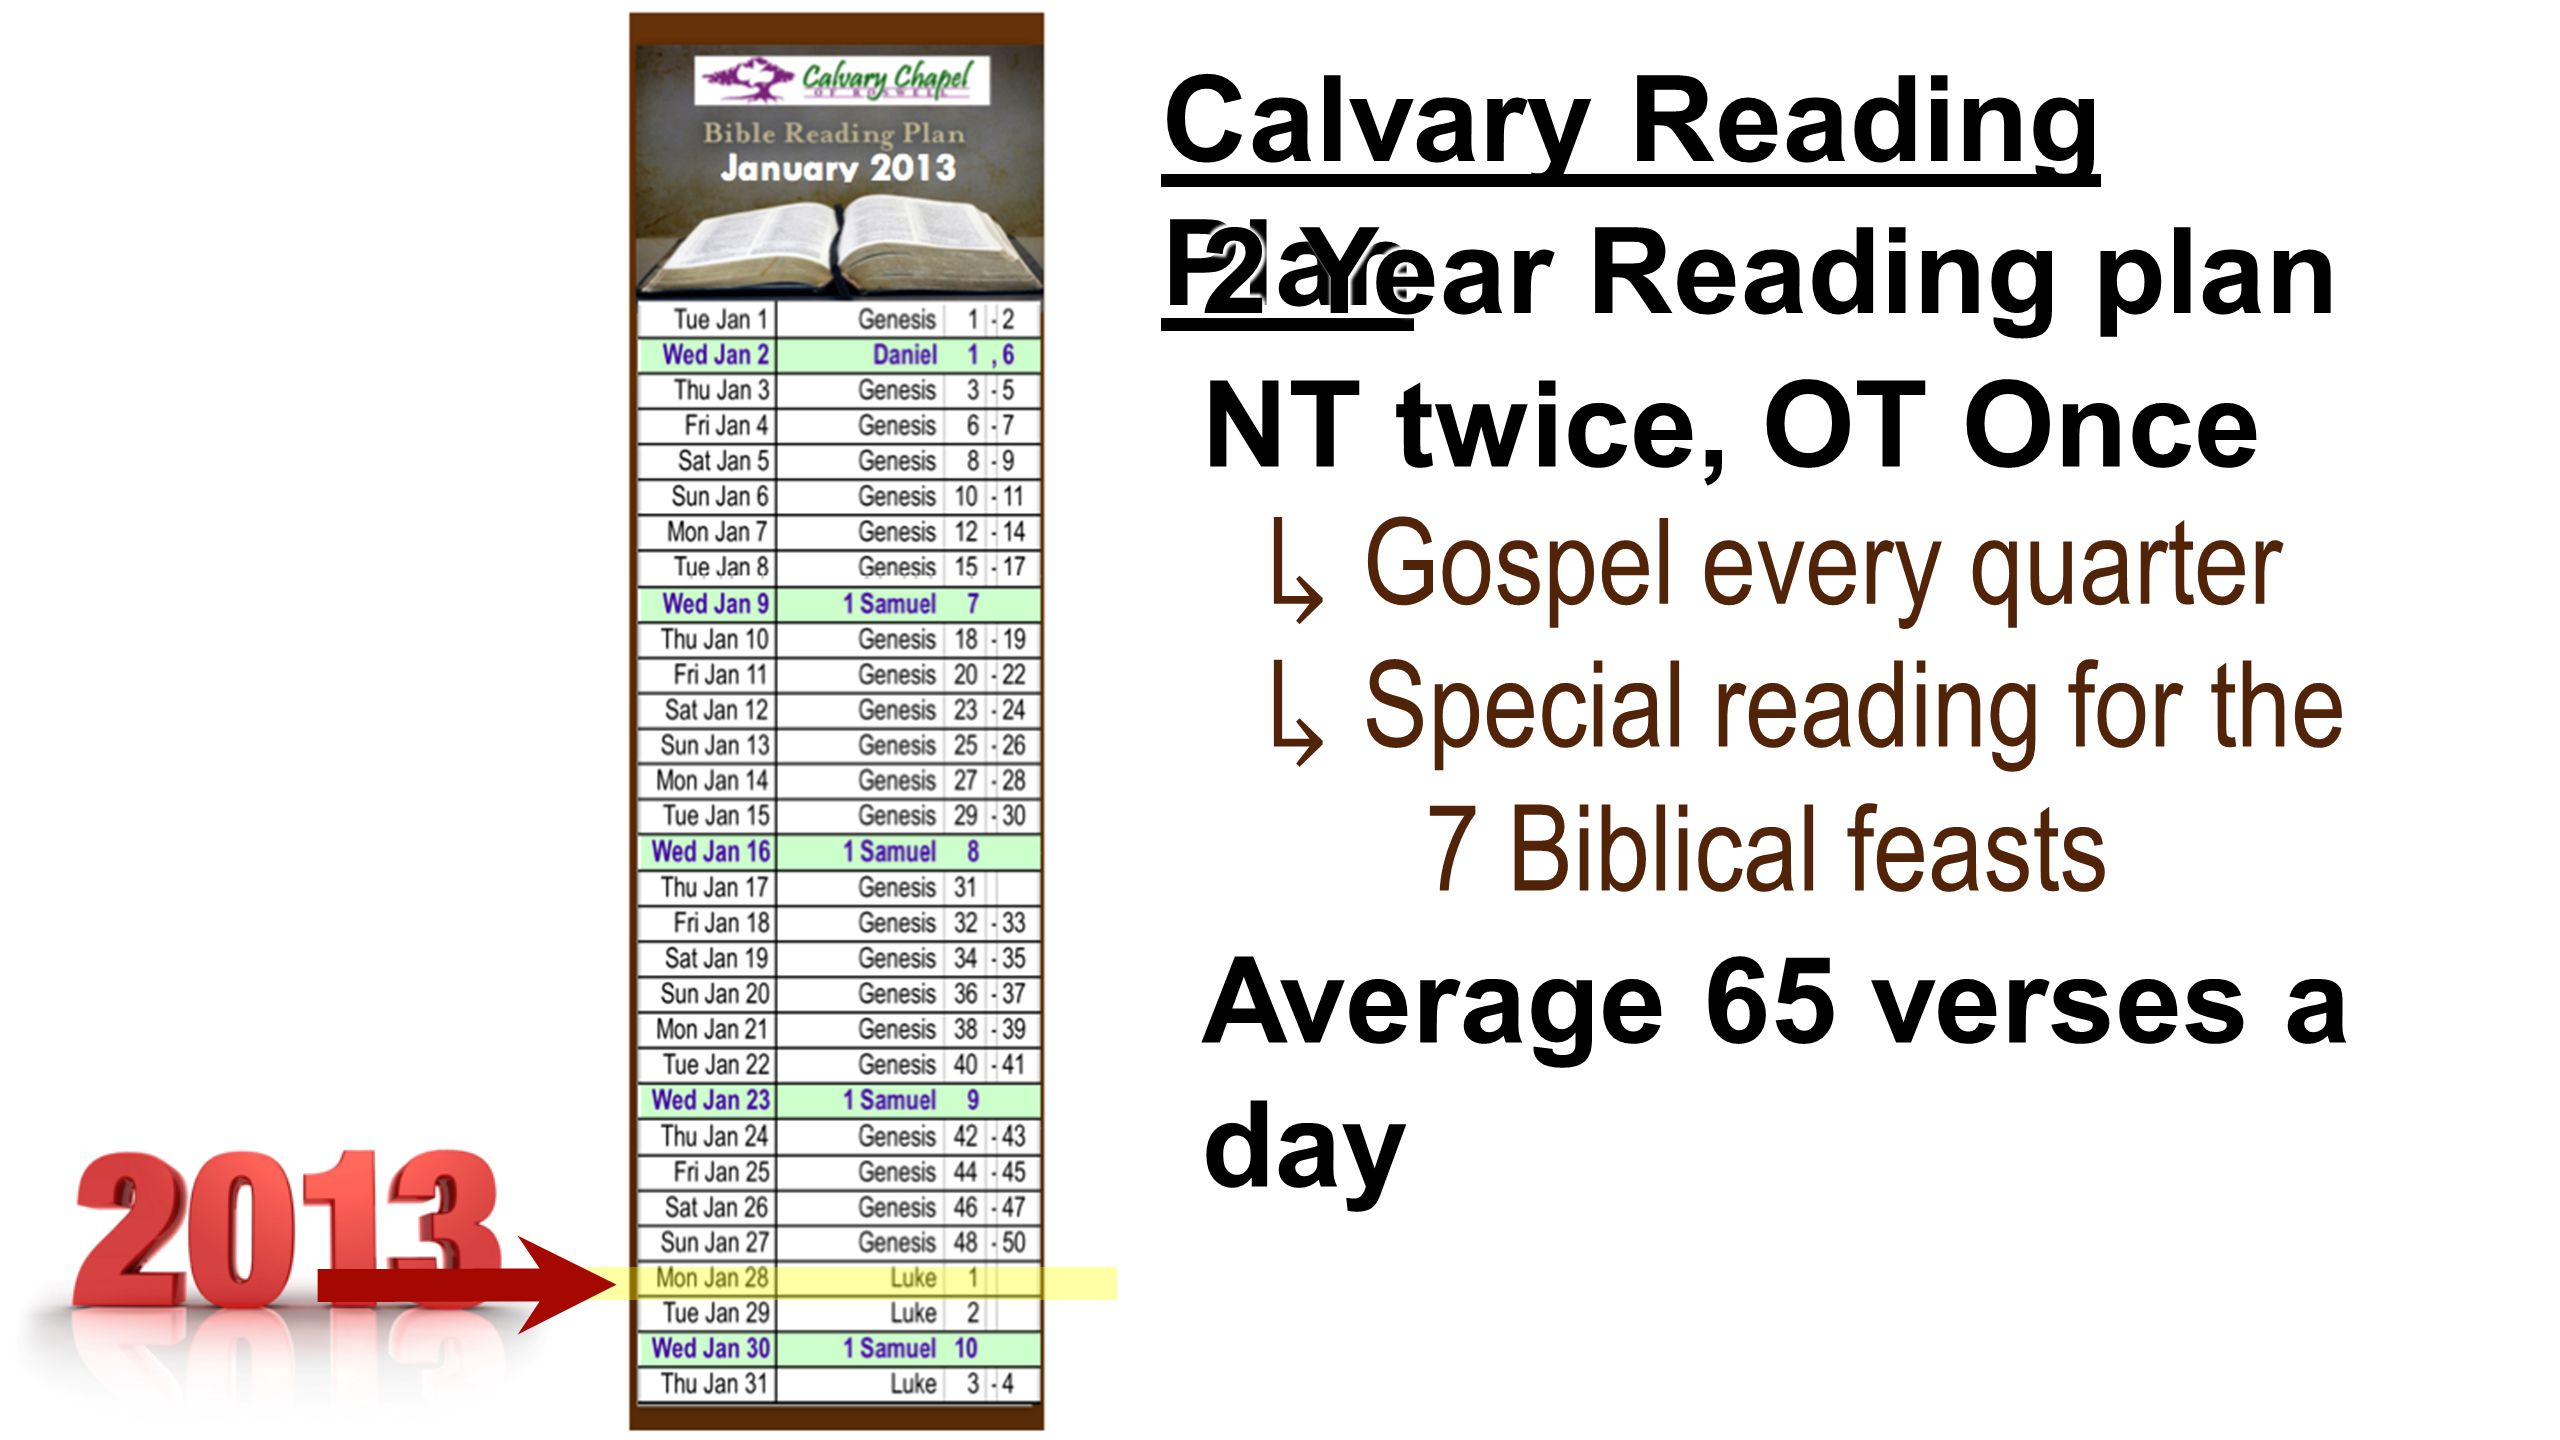 Calvary Reading Plan 2 Year Reading plan NT twice, OT Once ↳ Gospel every quarter ↳ Special reading for the 7 Biblical feasts 7 Biblical feasts ↳ Special reading for the 7 Biblical feasts 7 Biblical feasts Average 65 verses a day